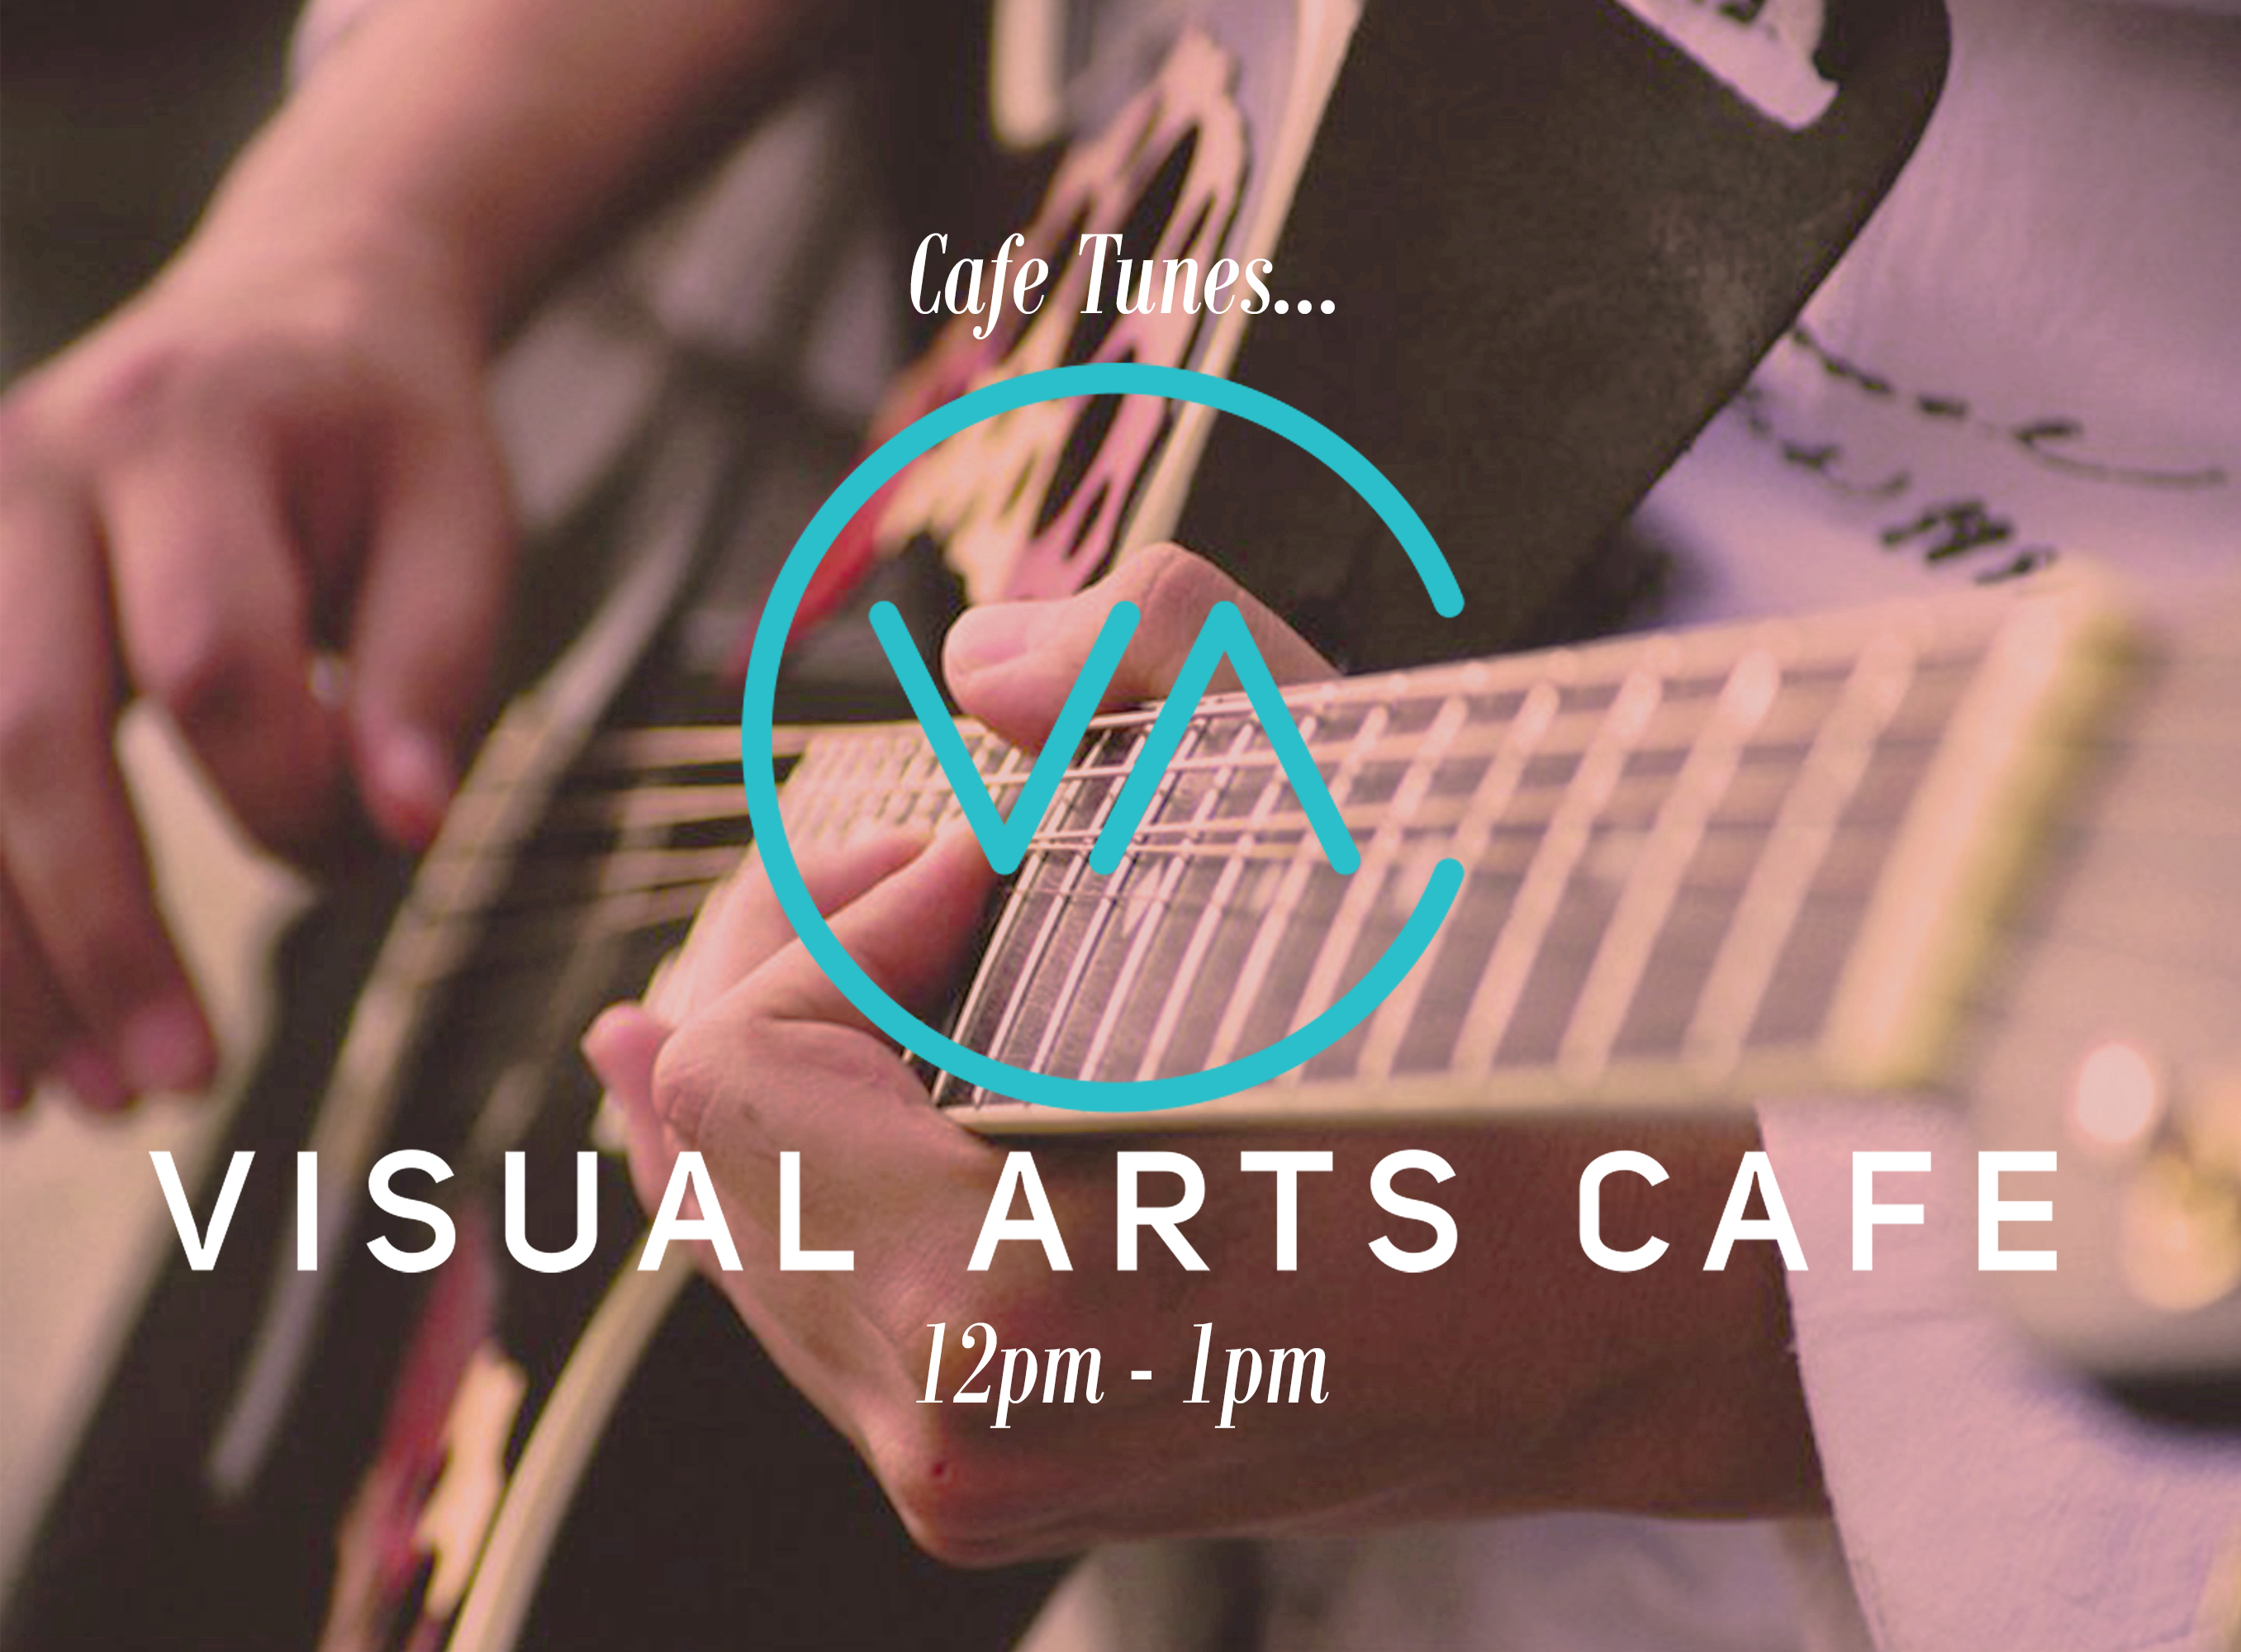 Cafe Tunes... Music at the Visual Arts Cafe